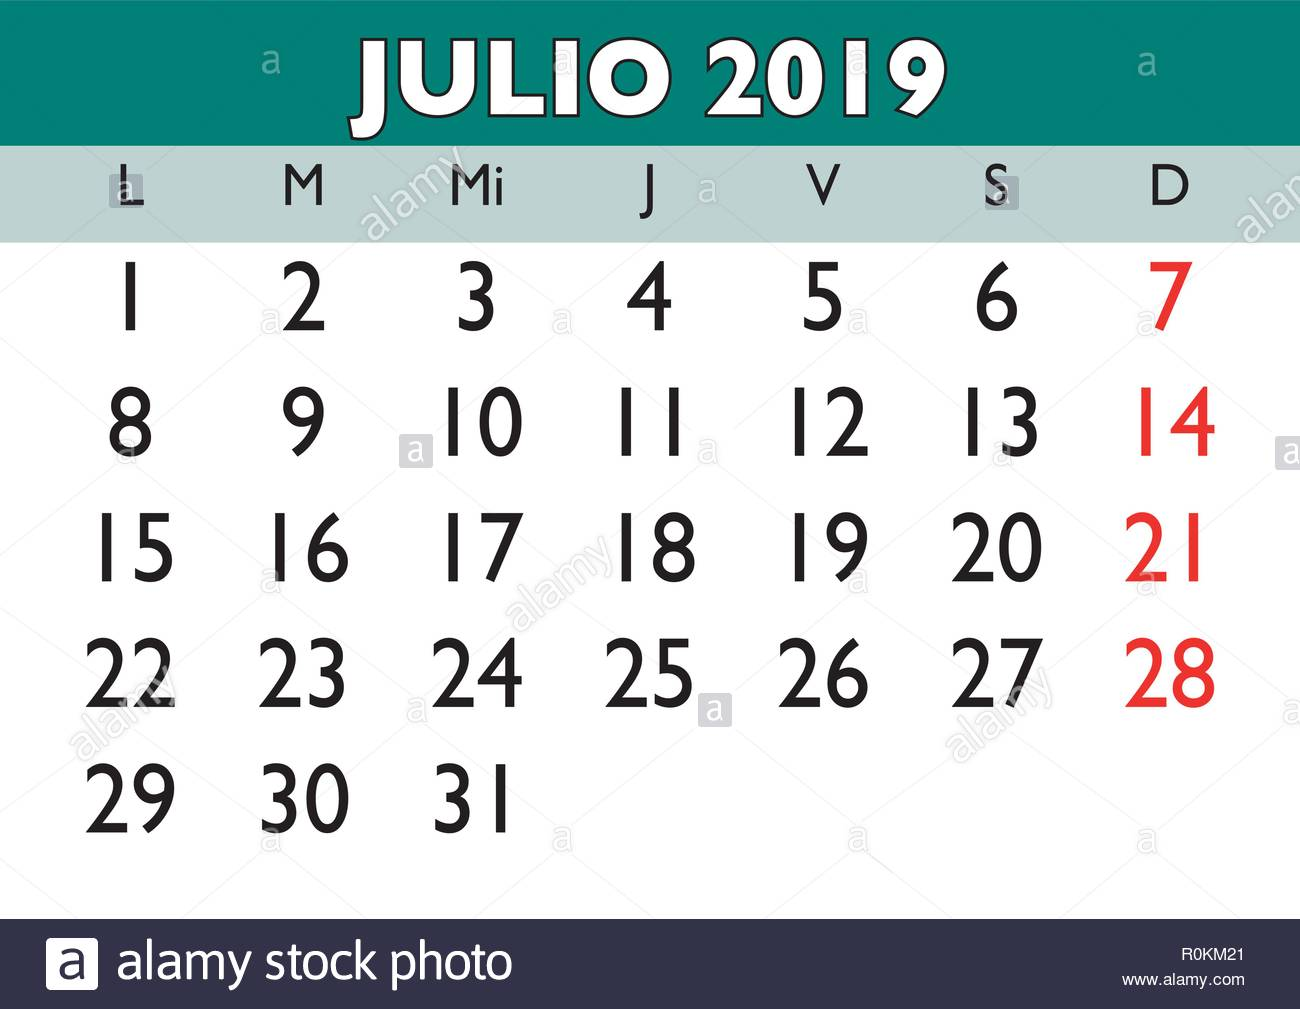 Calendario Julio 2019 Vector.July Month In A Year 2019 Wall Calendar In Spanish Julio